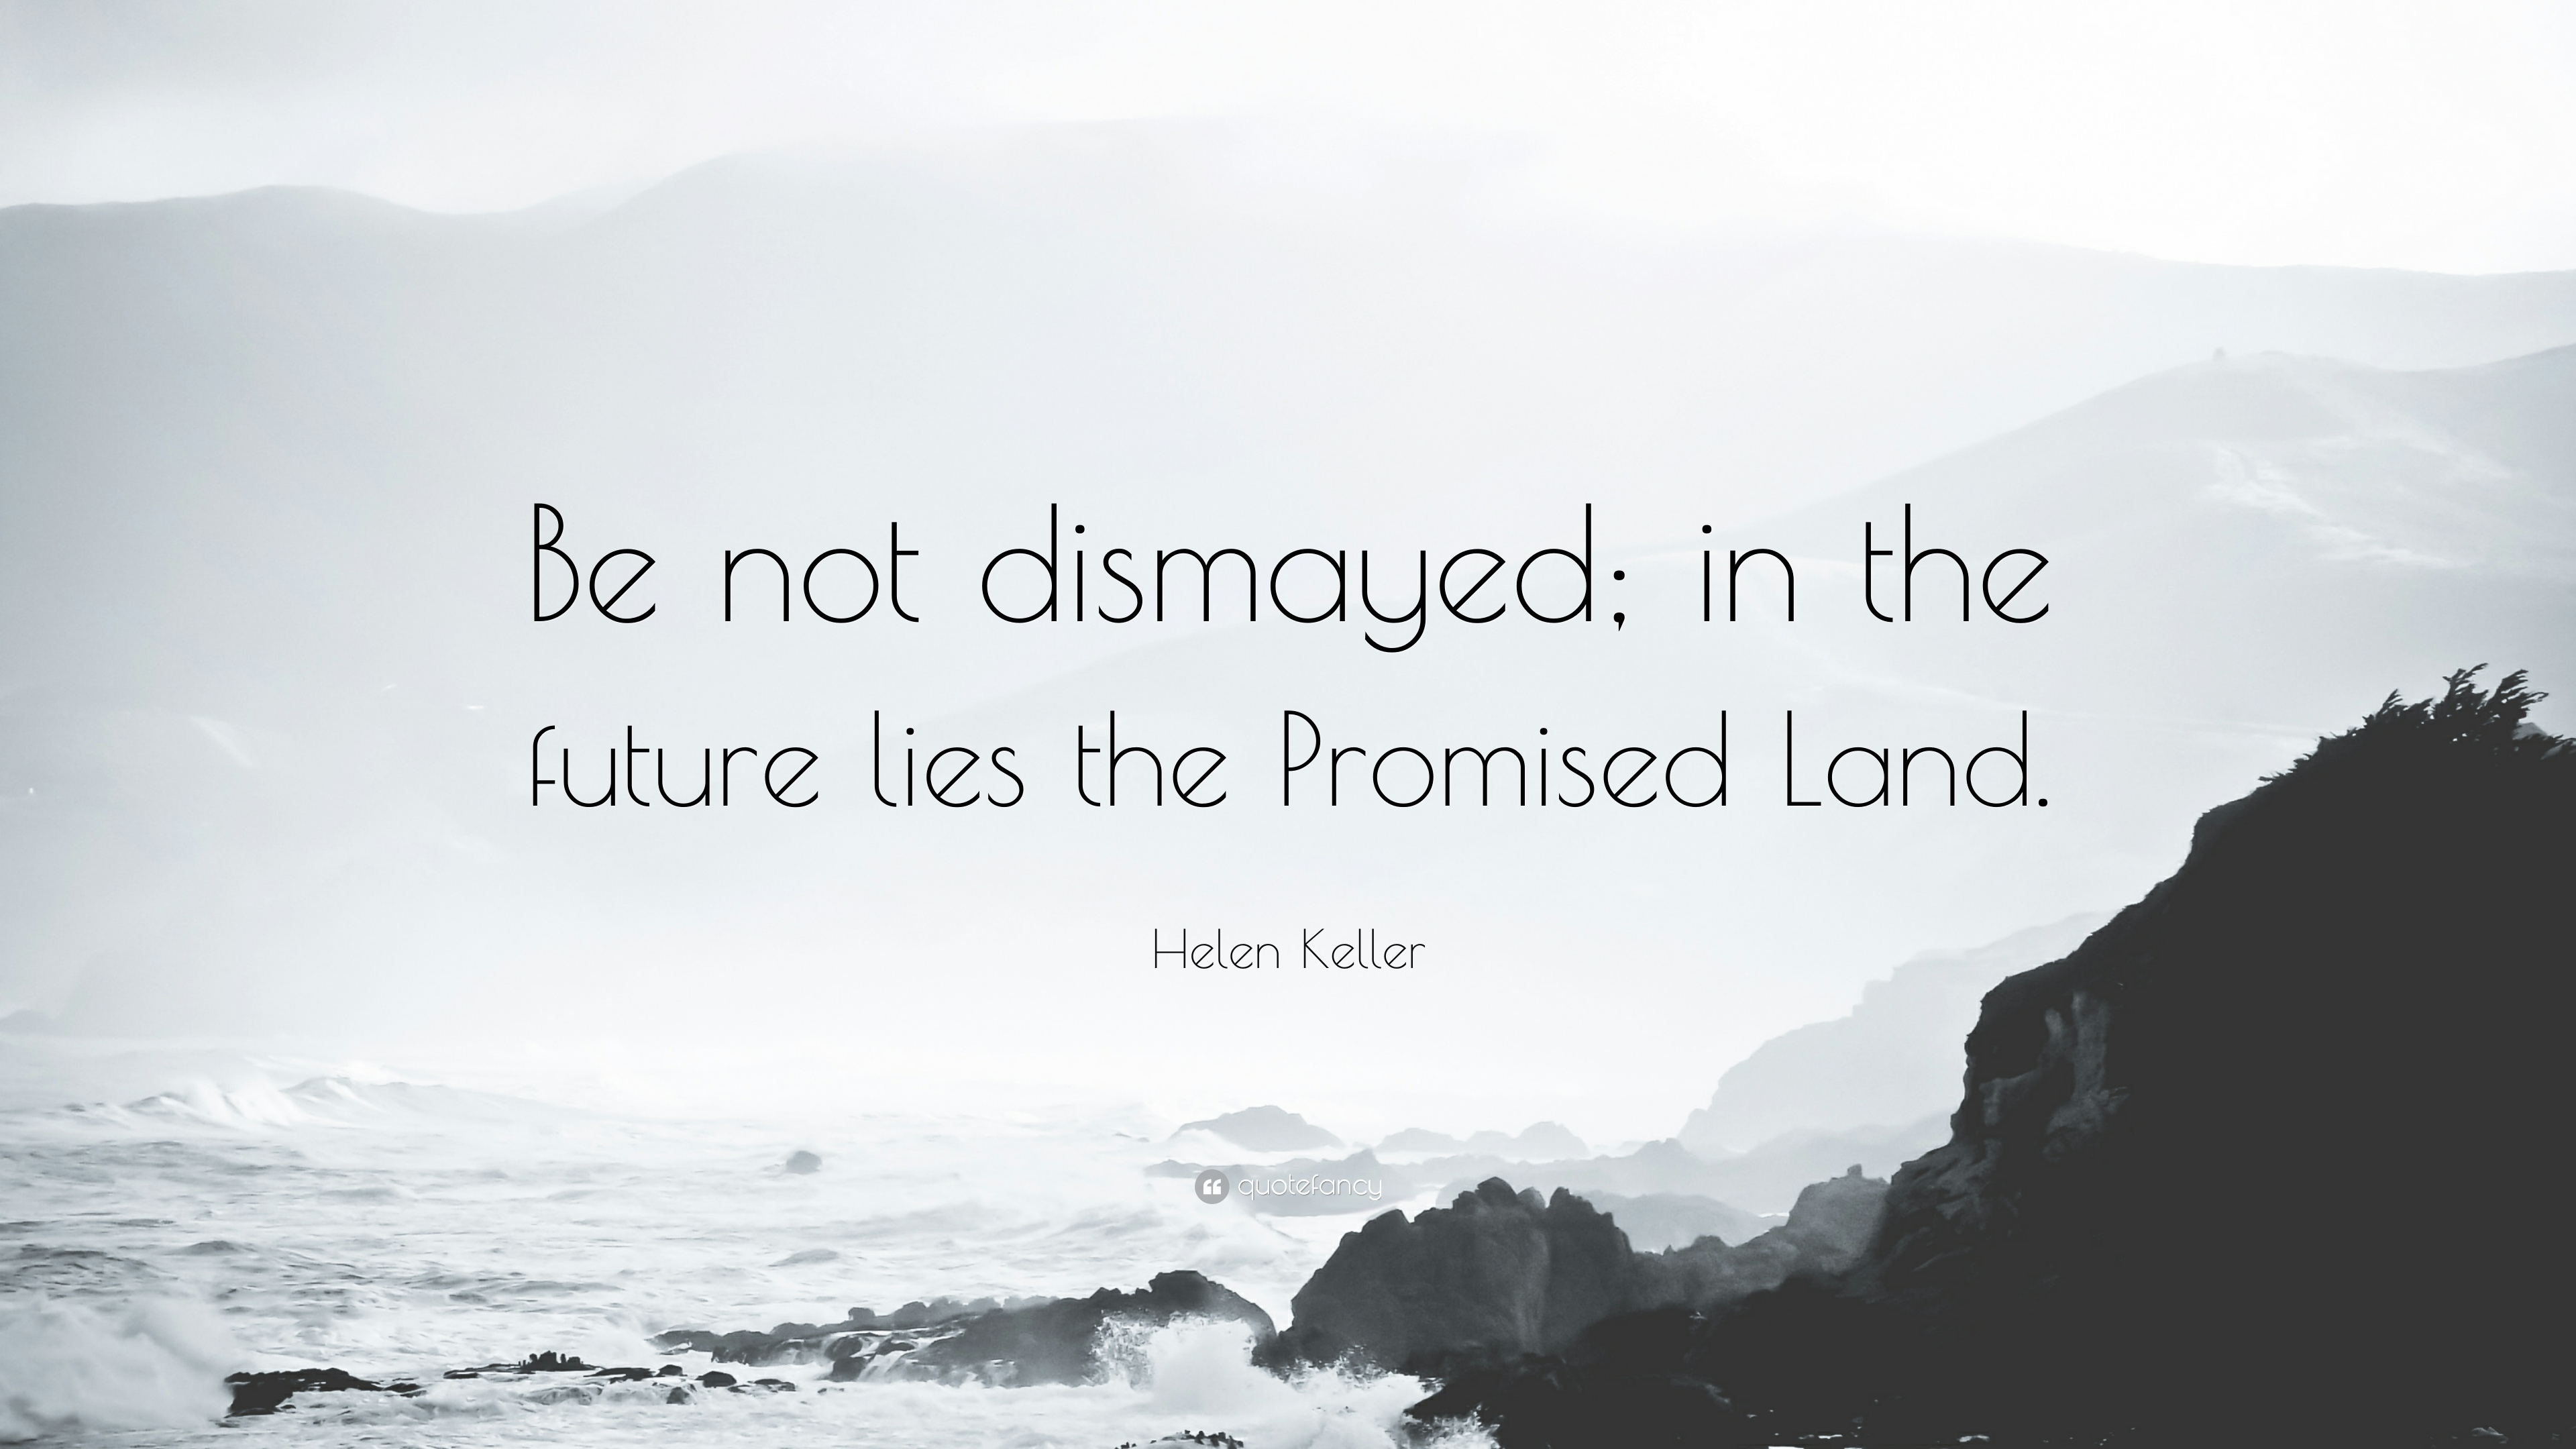 Helen keller quote be not dismayed in the future lies the helen keller quote be not dismayed in the future lies the promised land altavistaventures Images